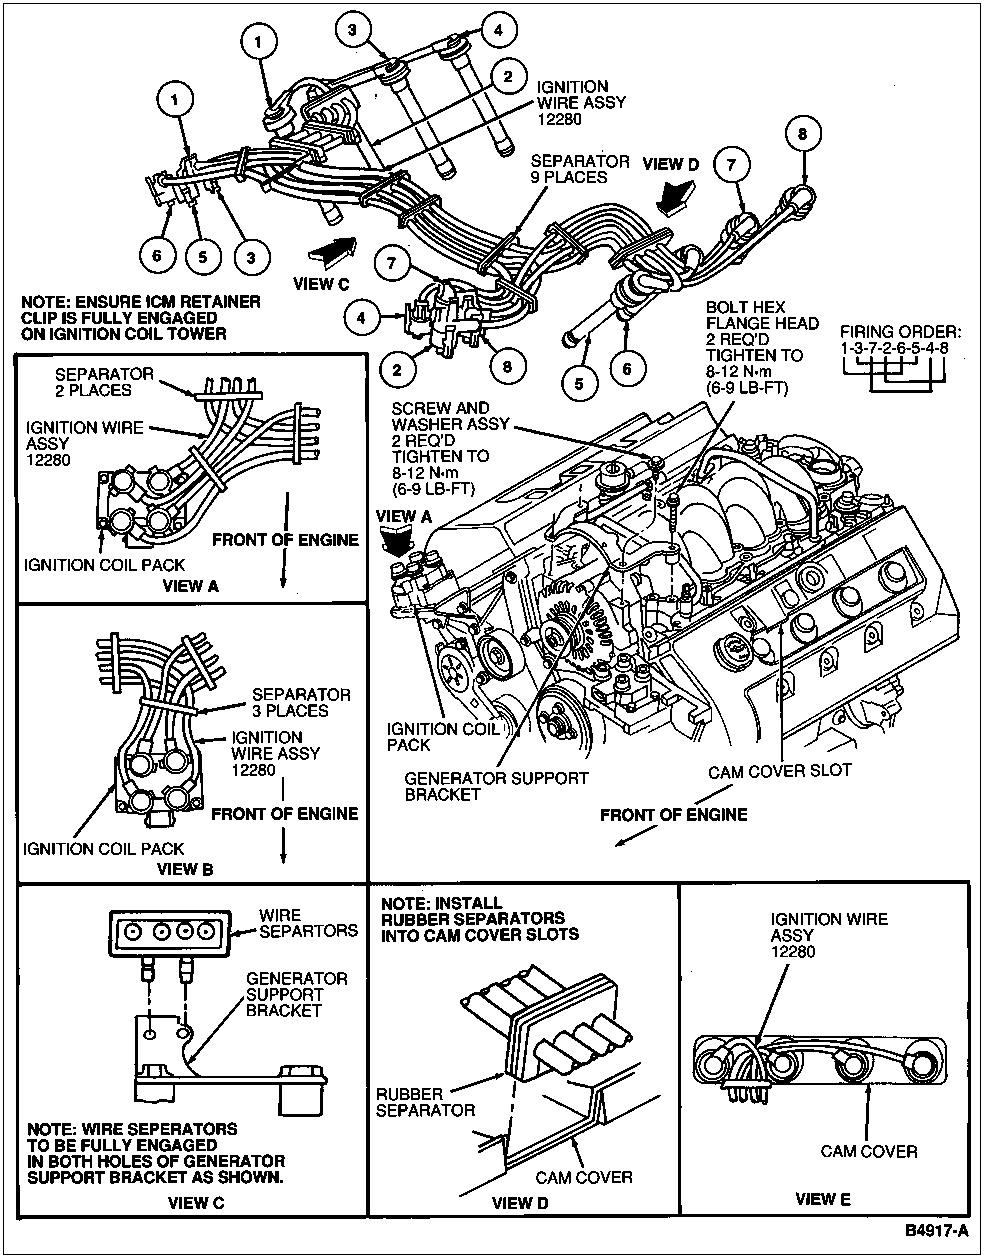 gl1800 wiring schematic wiring diagramwiring diagram honda rc51 wiring diagram databaserc wiring basic wiring diagram database 2006 gl1800 wiring diagram